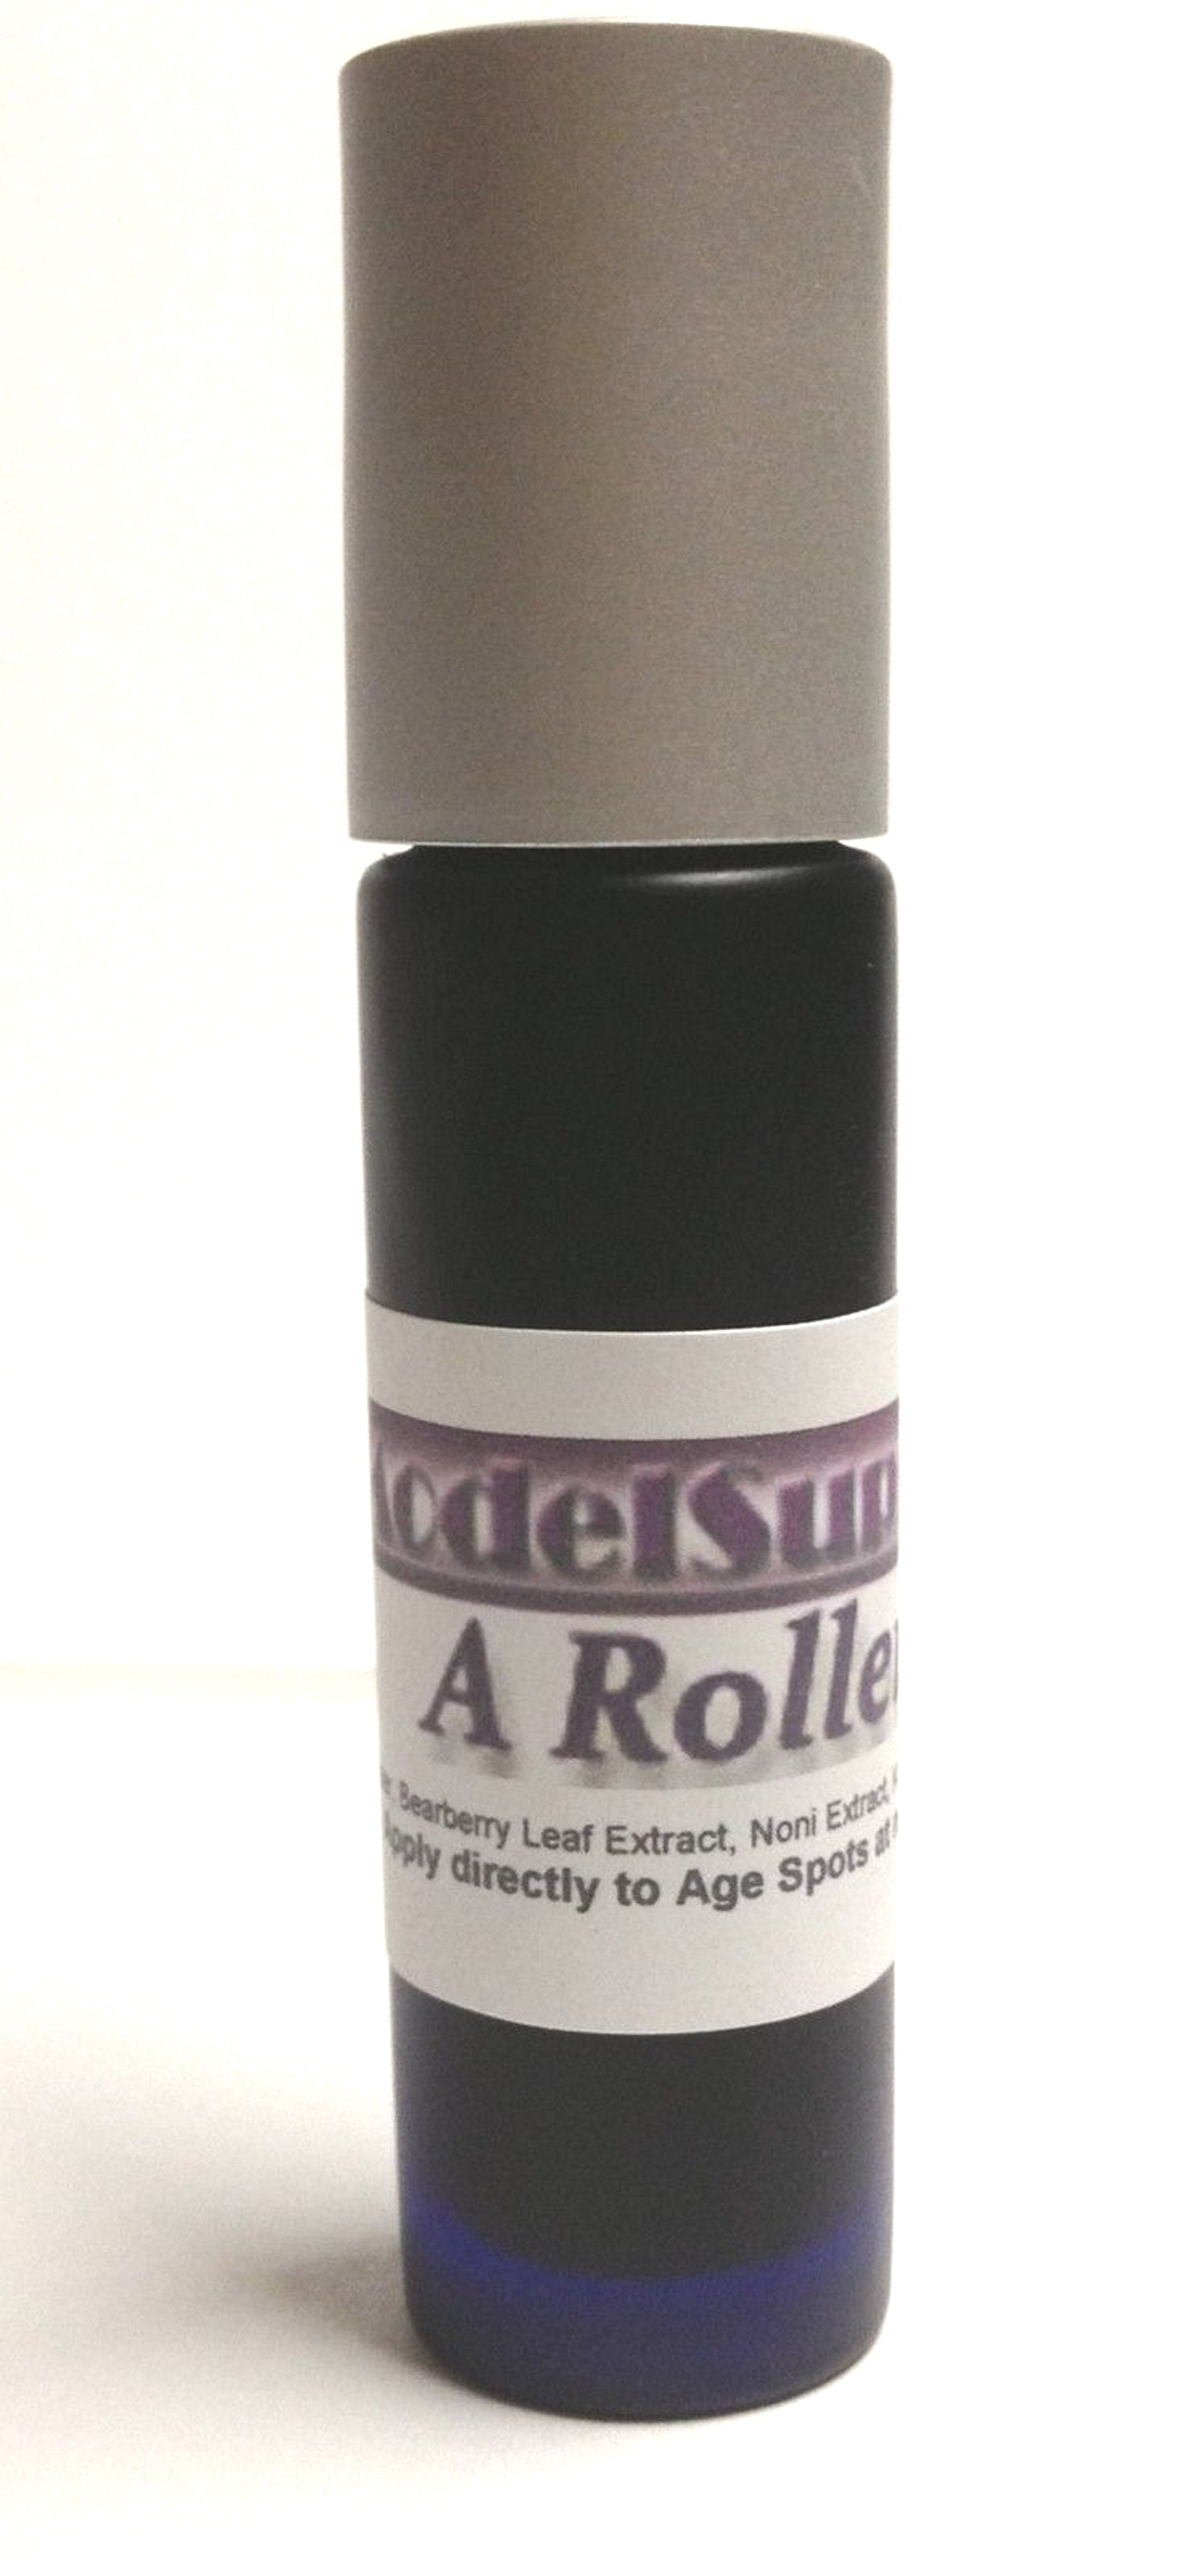 ModelSupplies A Roller Roll Away Age Liver Spots Face Hands Arms Body 10ml  USA